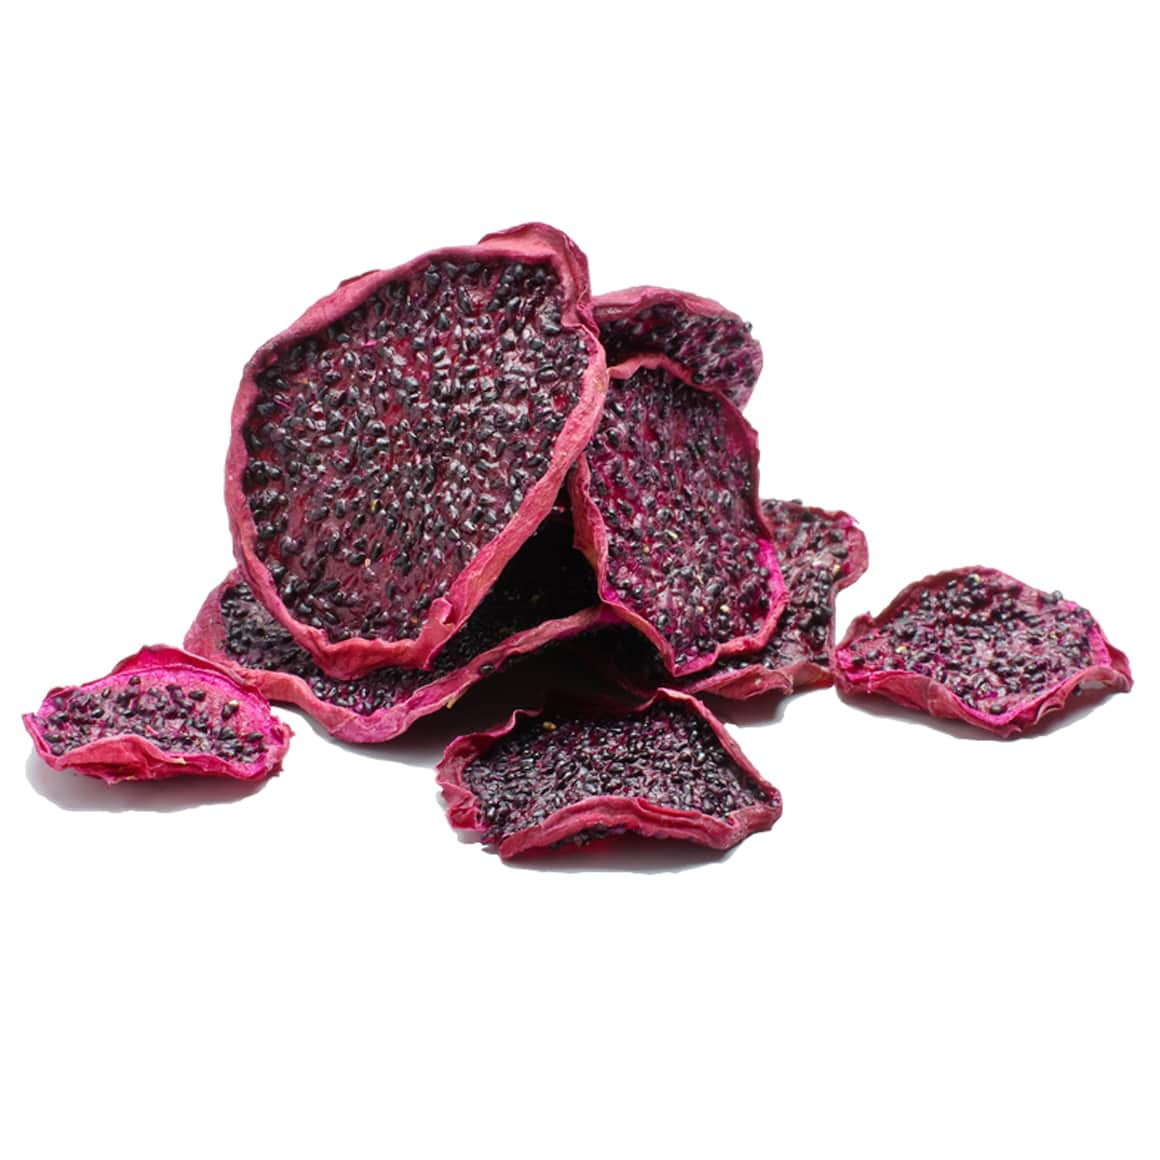 Organic Dried Dragon Fruit (Pitaya)